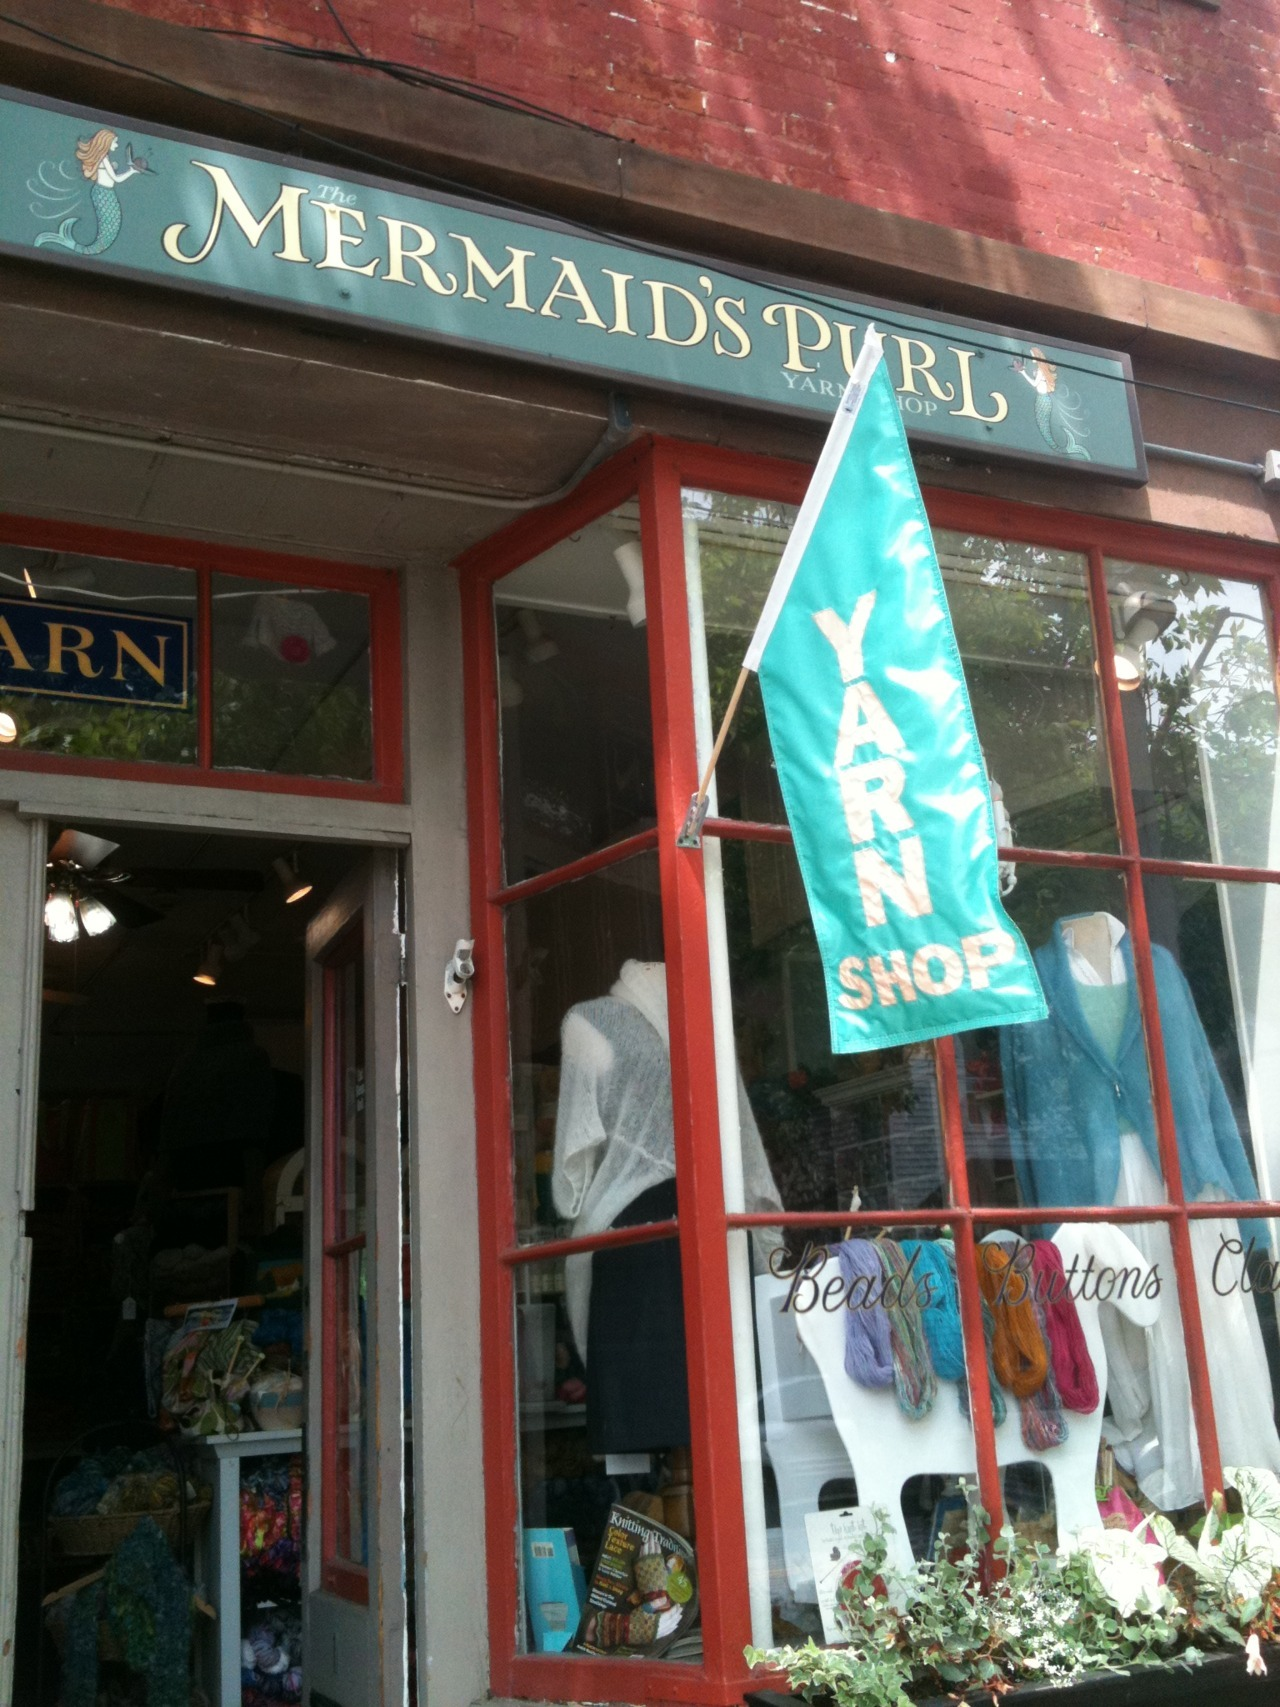 Mermaid's Purl